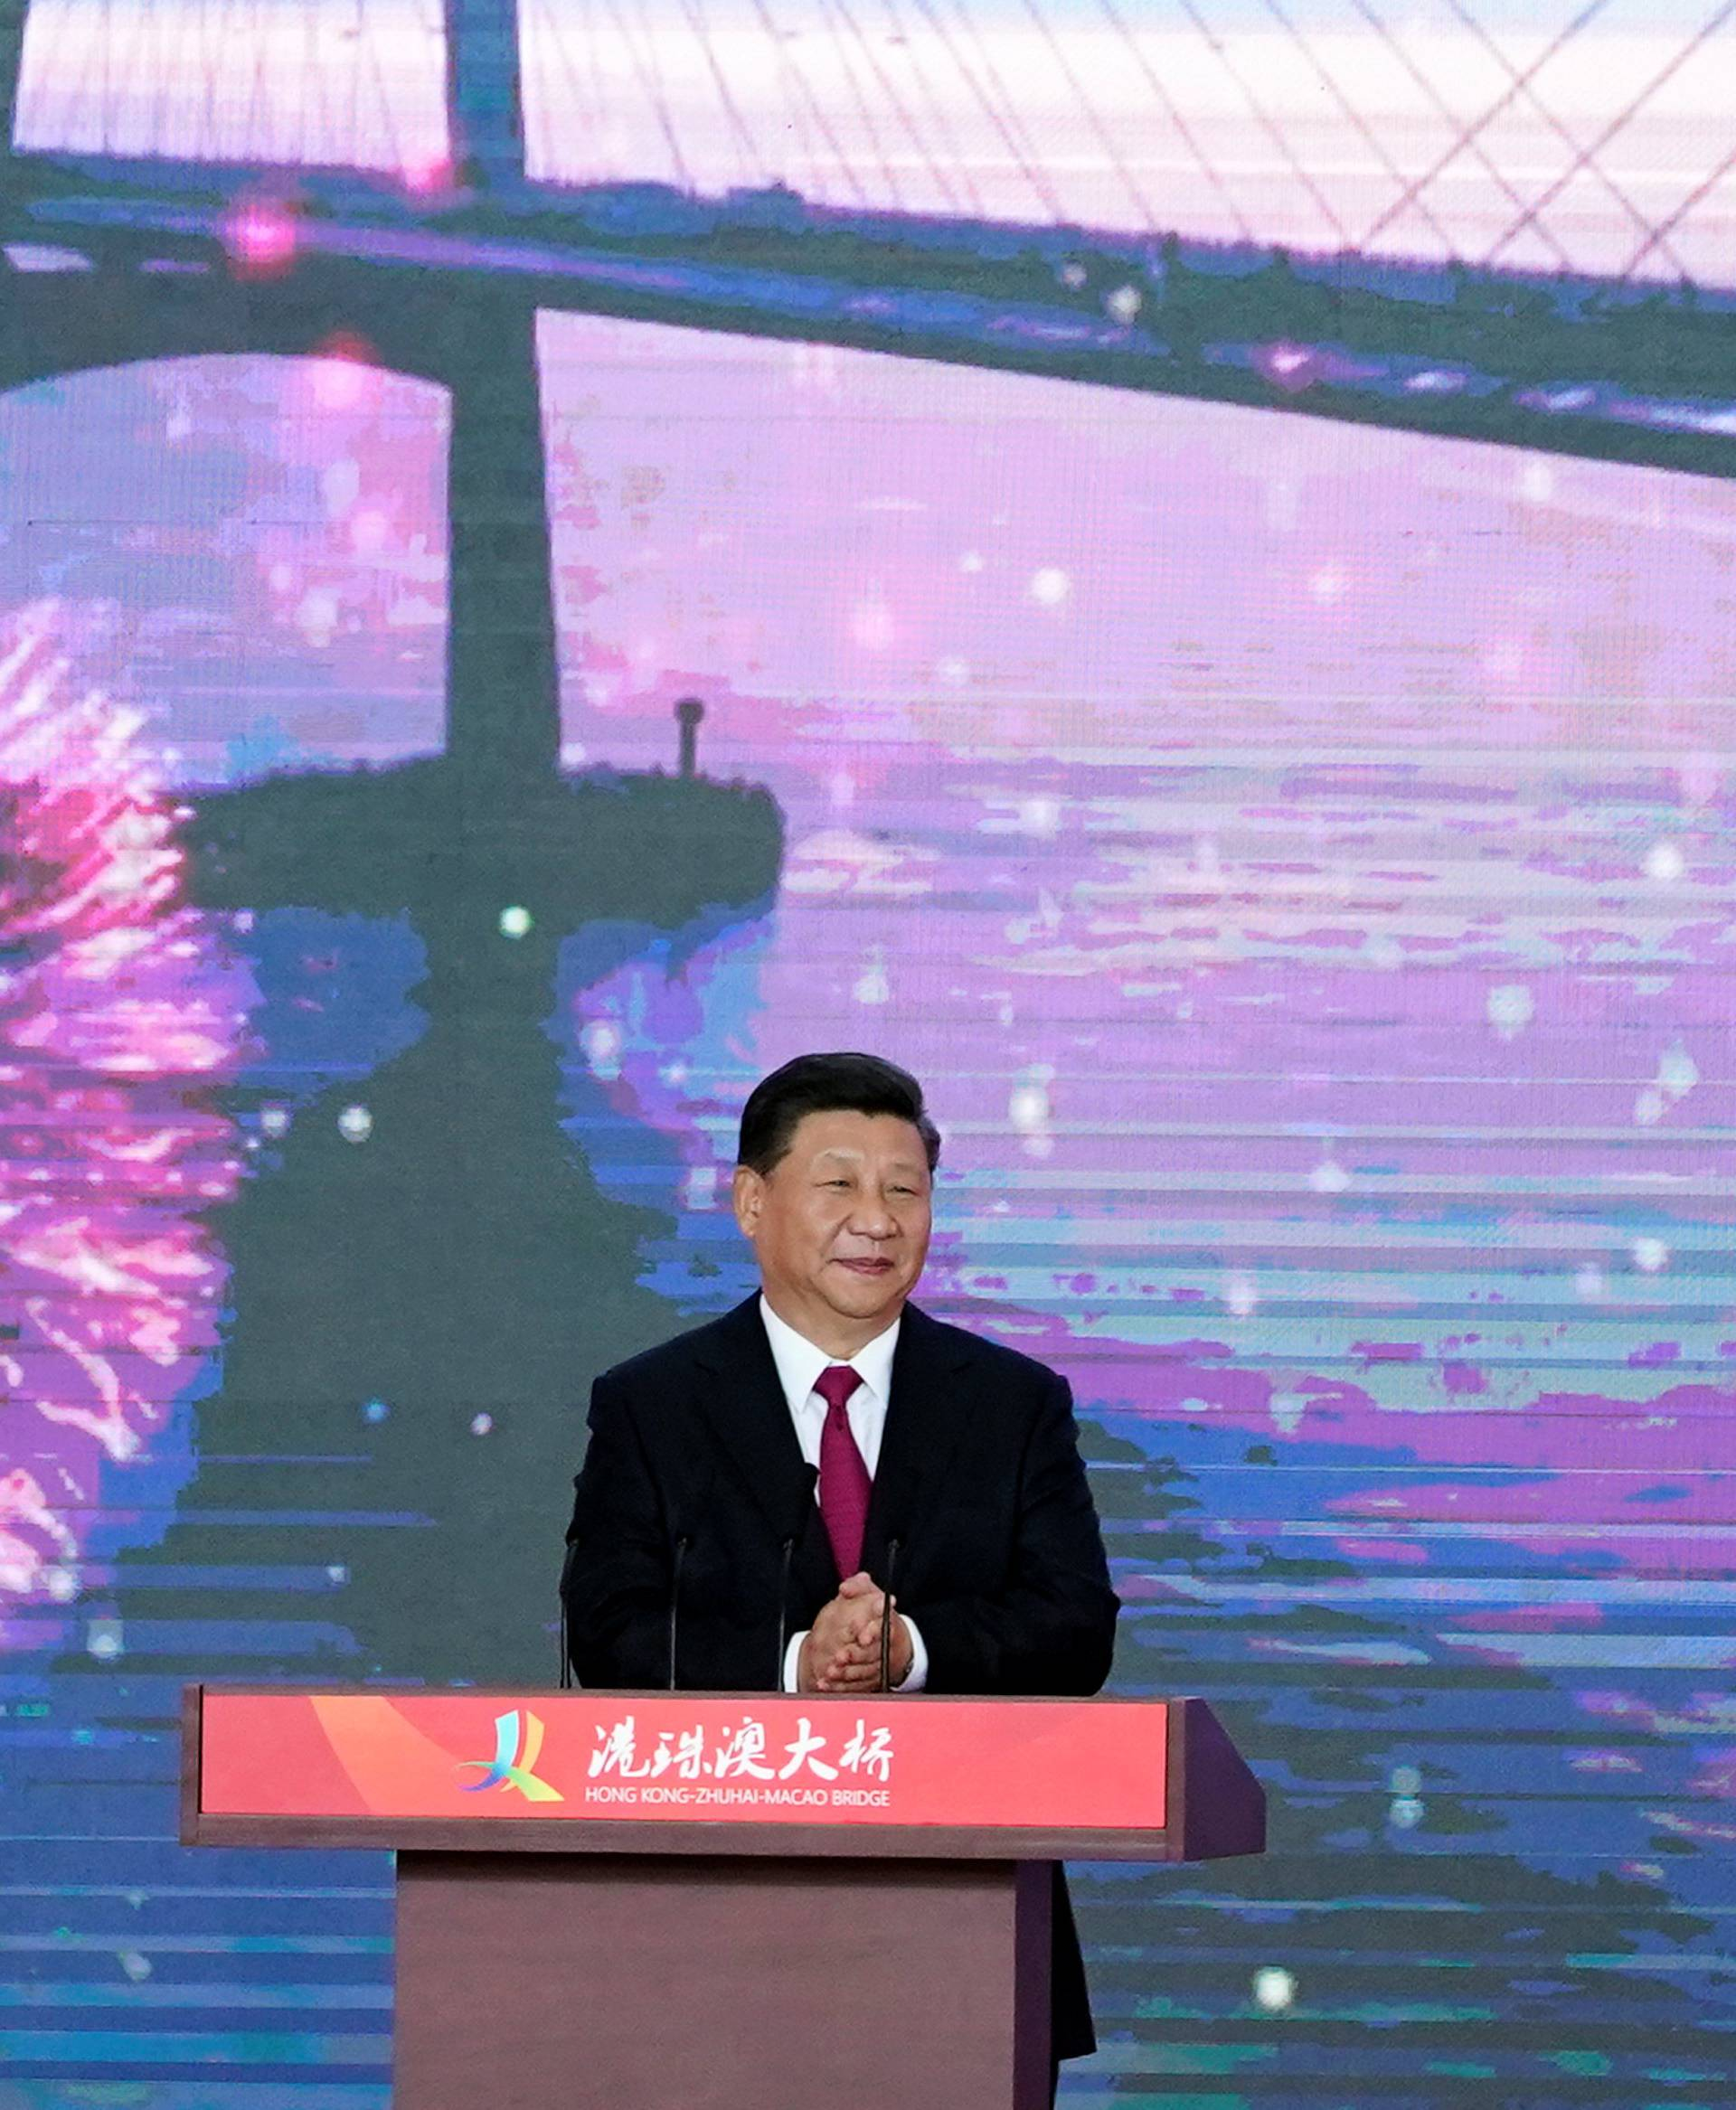 Chinese President Xi Jinping attends the opening ceremony for the Hong Kong-Zhuhai-Macau bridge in Zhuhai